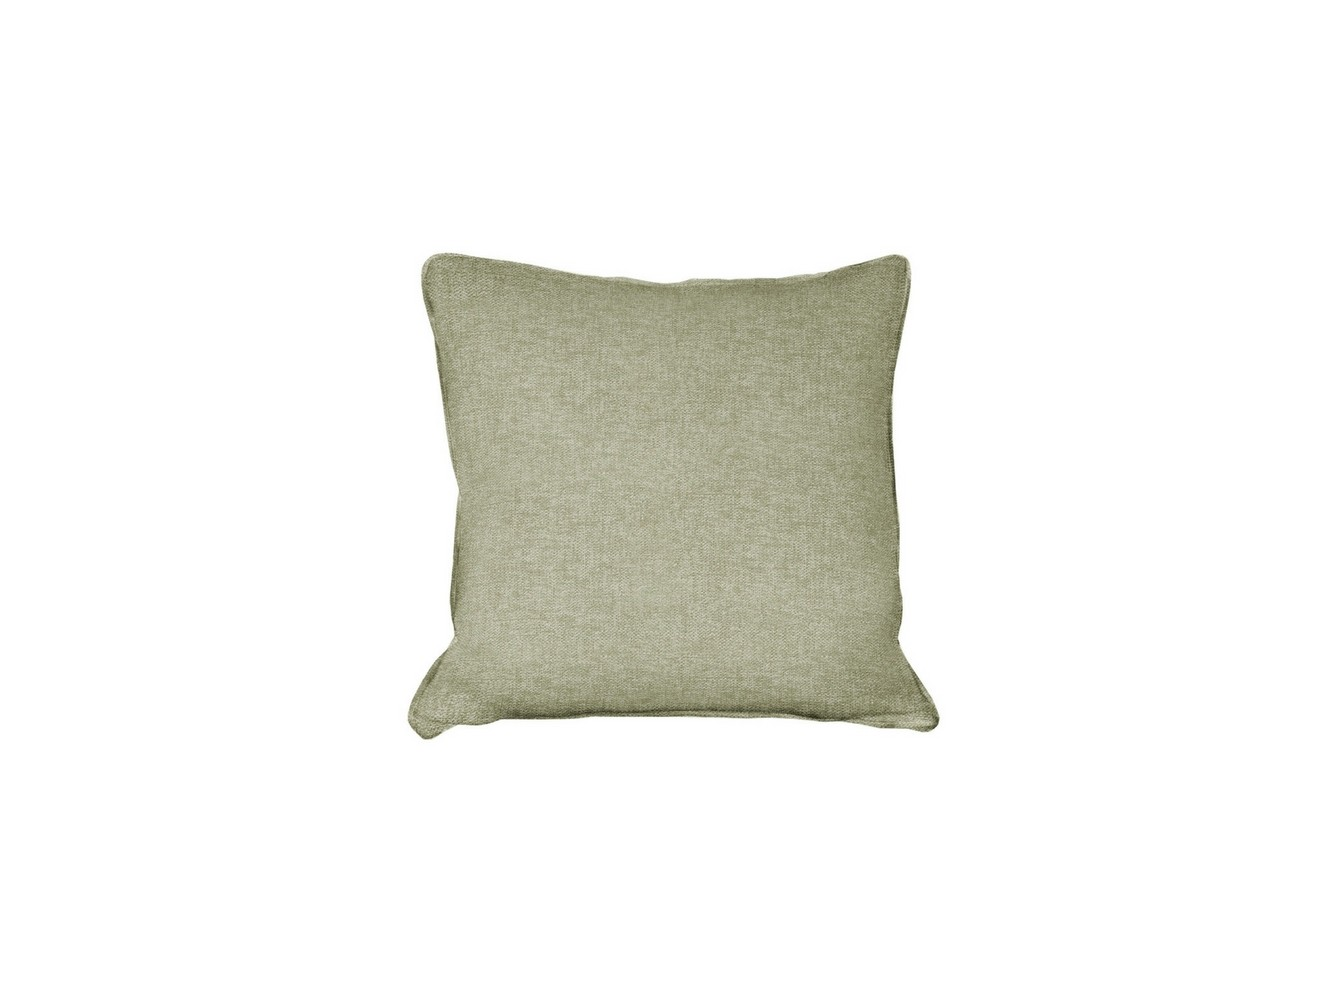 Extra Scatter Cushions - Fabric Pavilion Grey